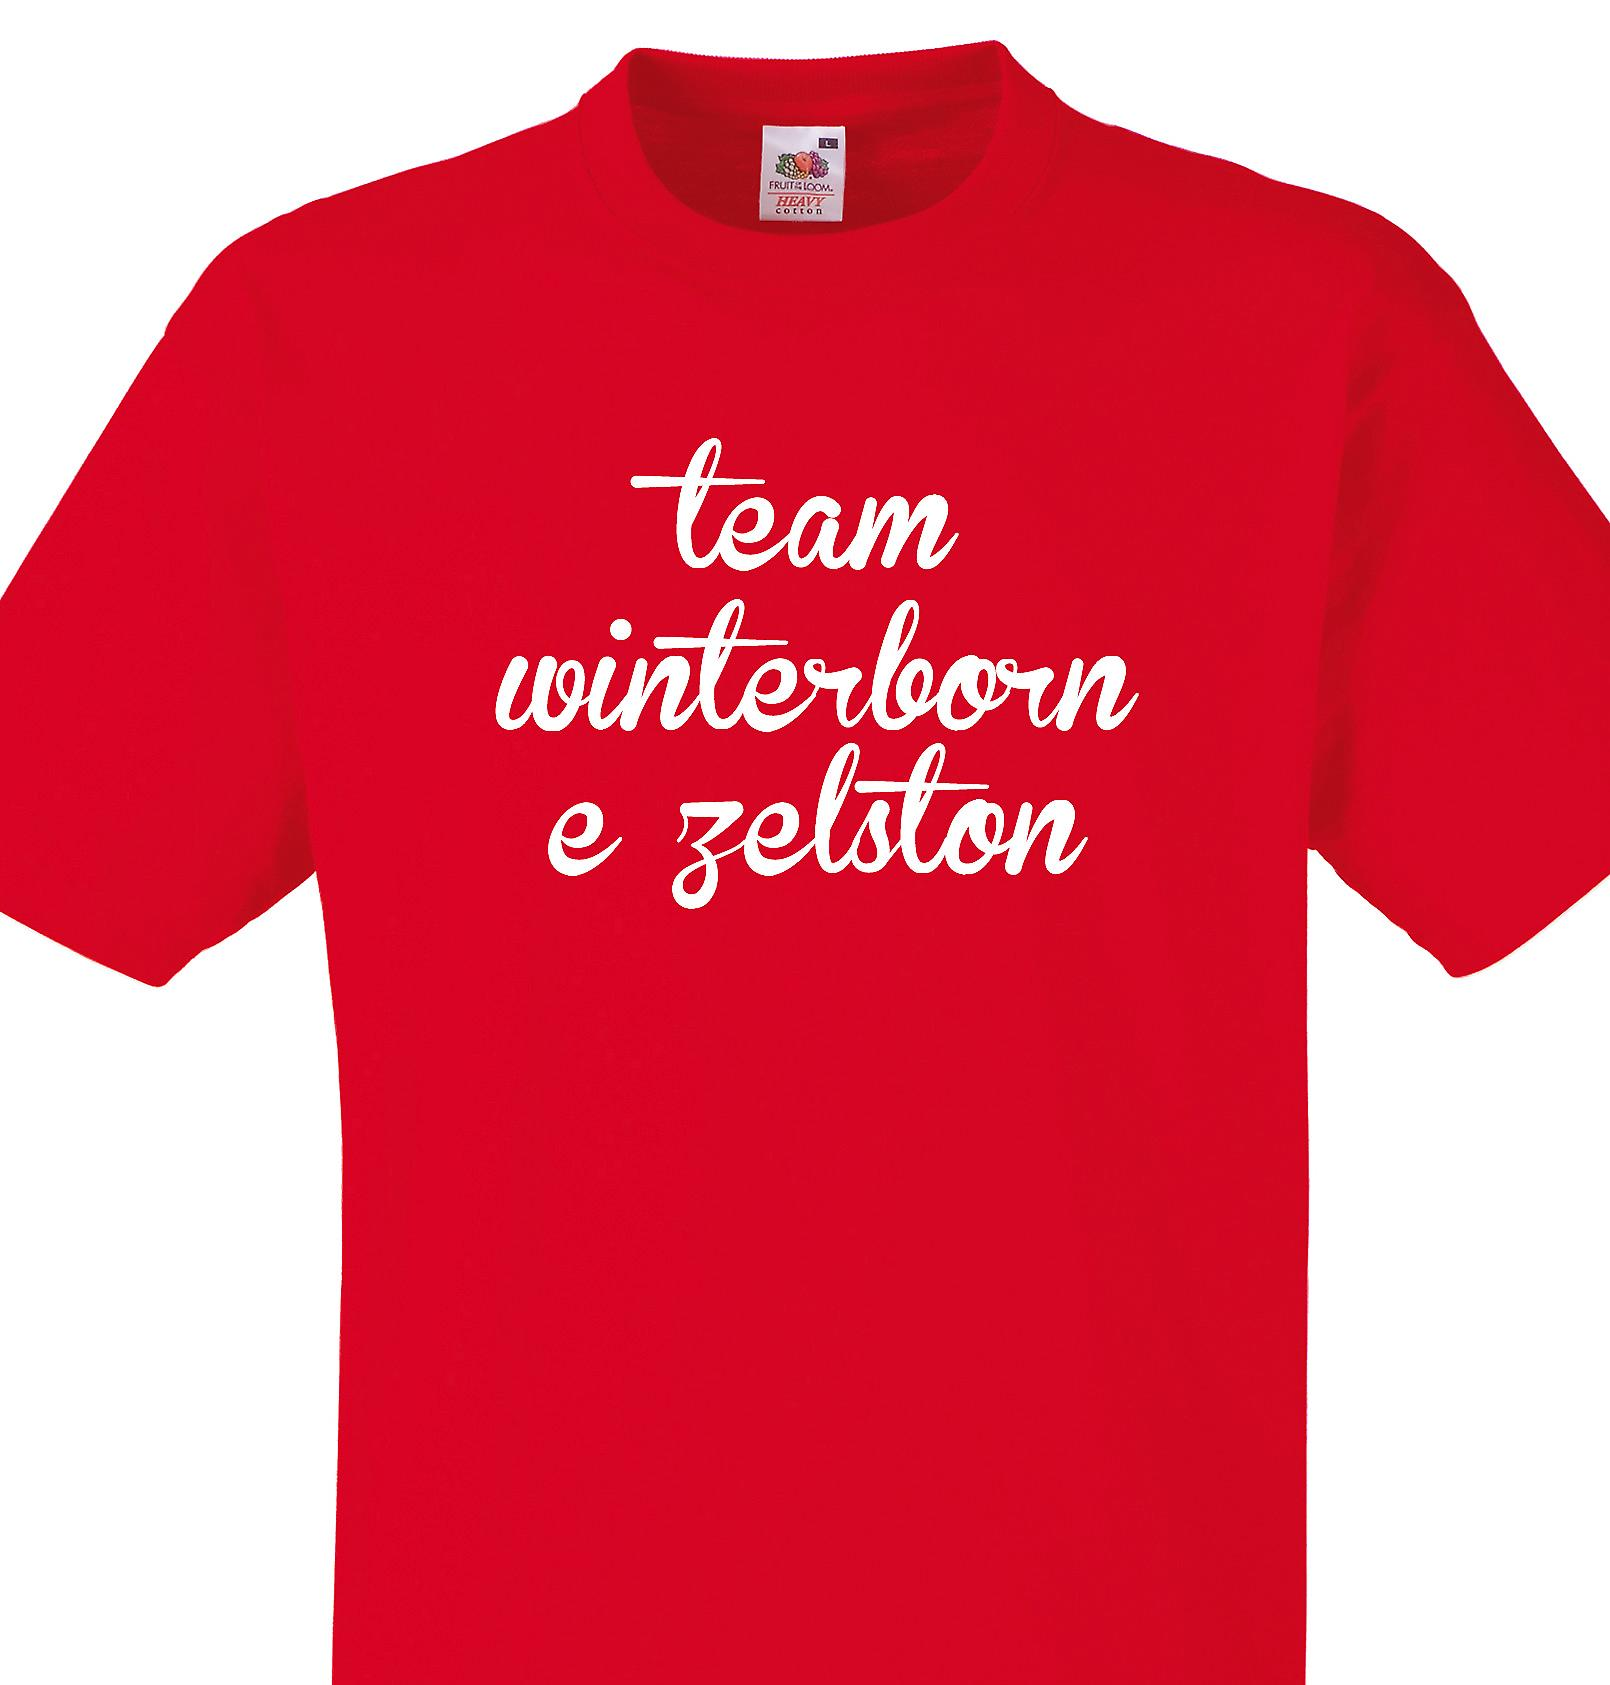 Team Winterborne zelston Red T shirt